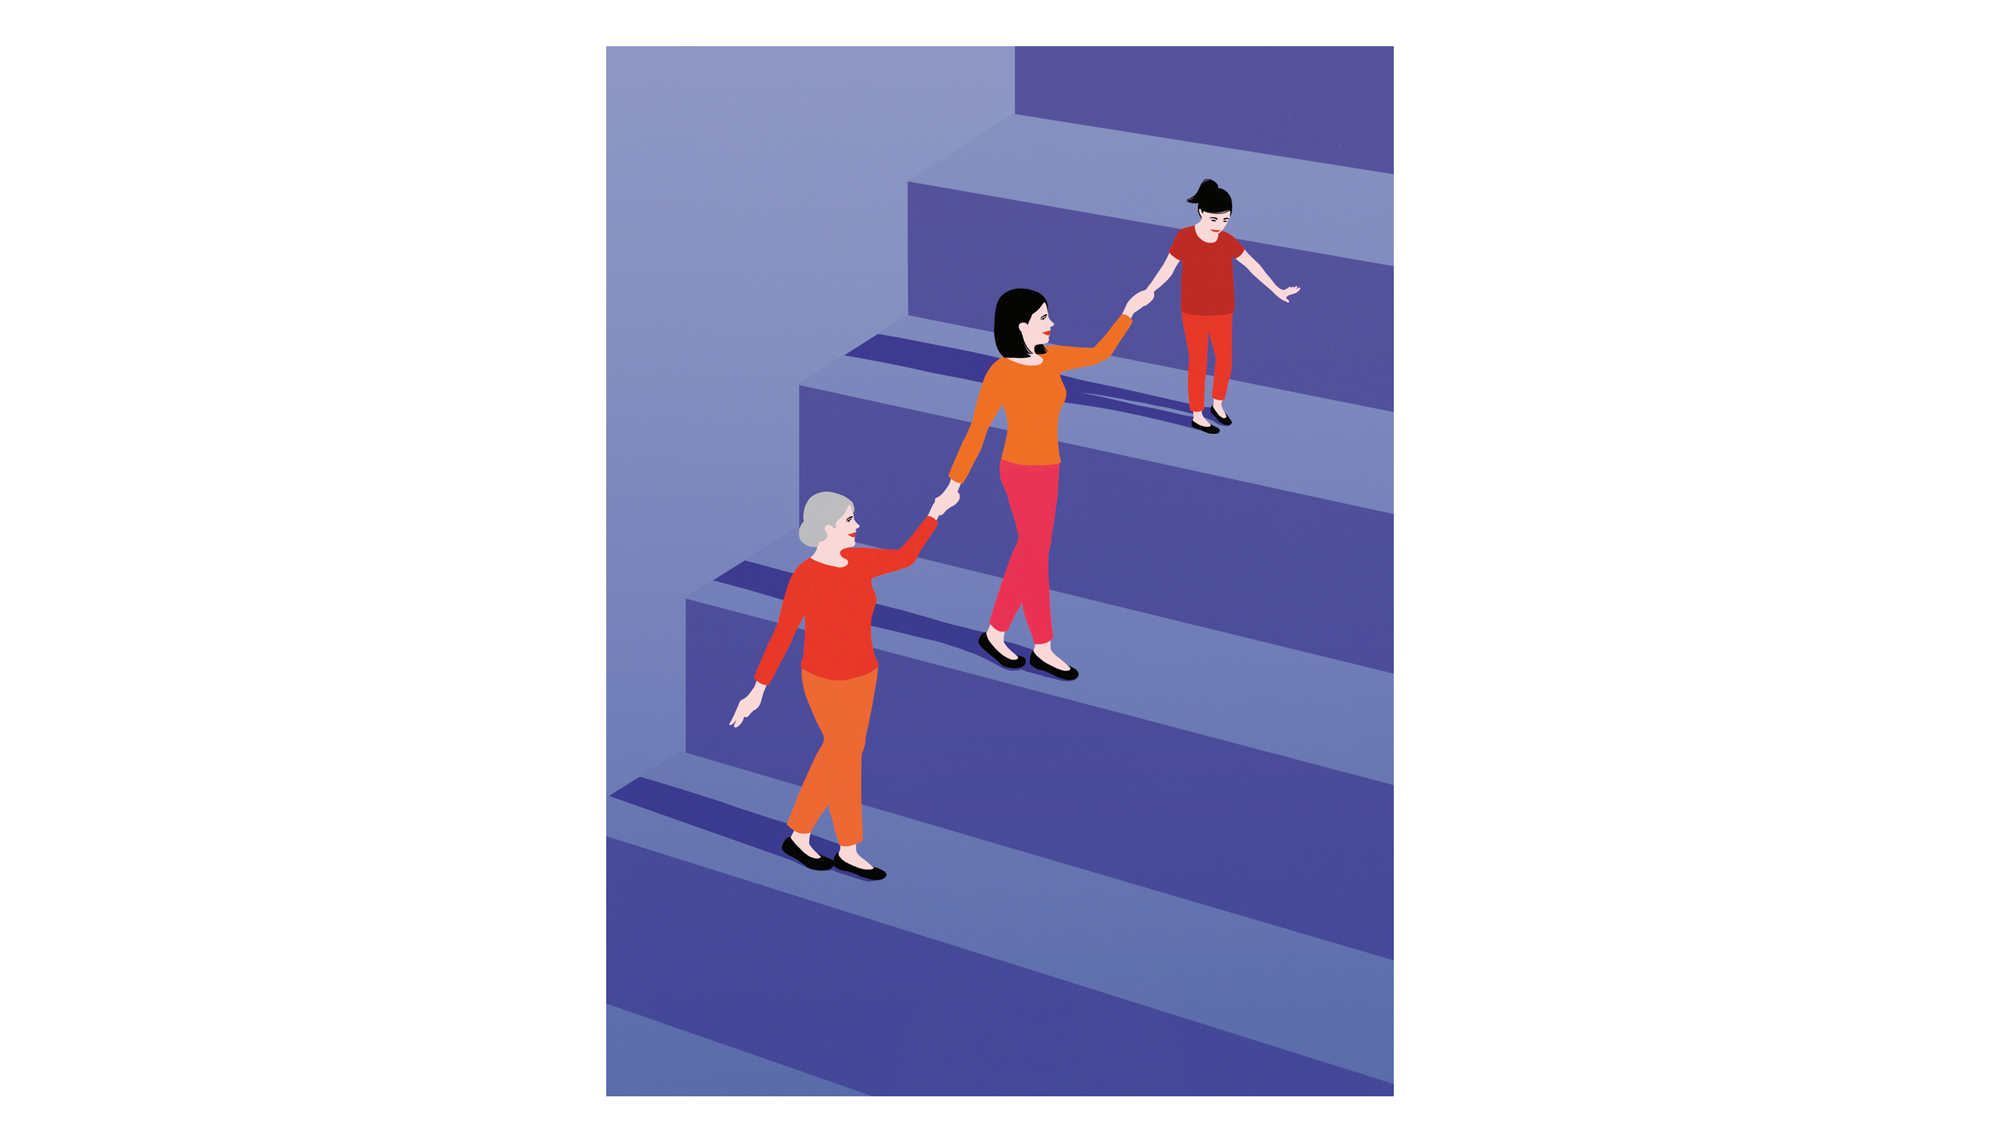 Illustration: 3 generations of women on stairs